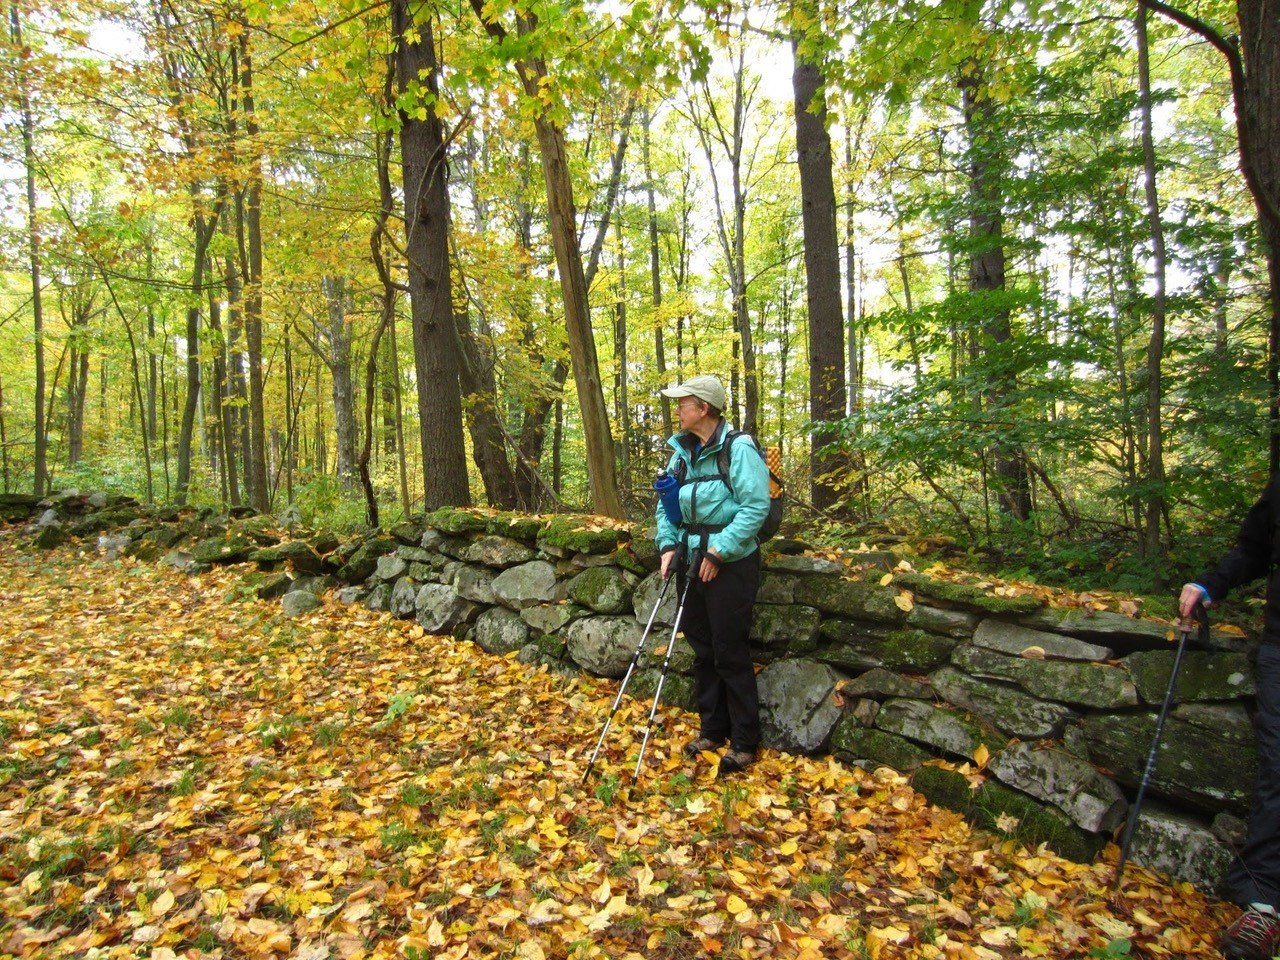 Hiker with poles sitting on rock wall in woods with leaves on ground surrounded by tall trees.